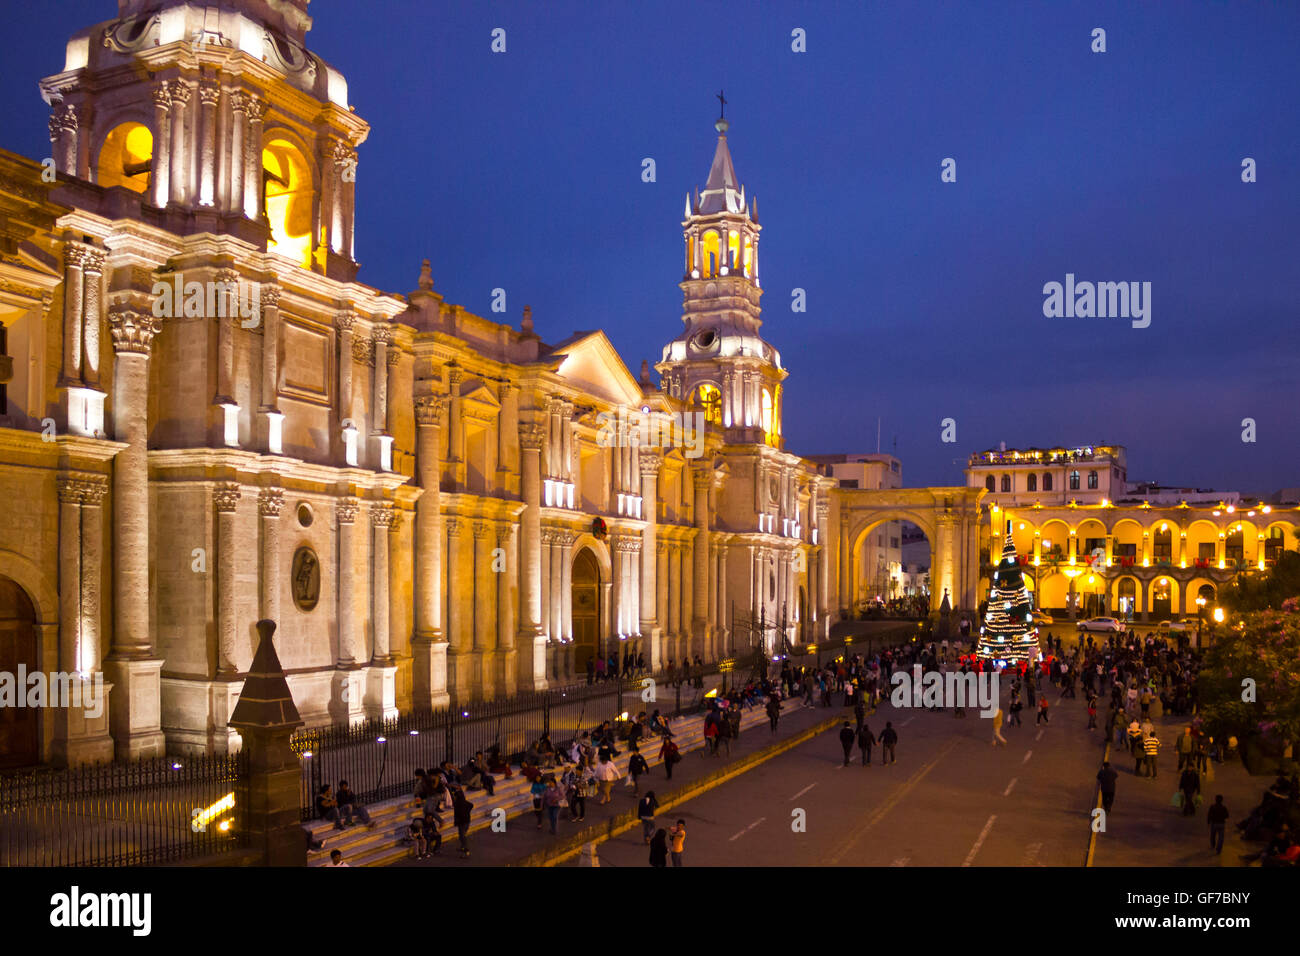 Basilica Cathedral of Arequipa located in the Plaza de Armas, Arequipa, Peru, South America Stock Photo